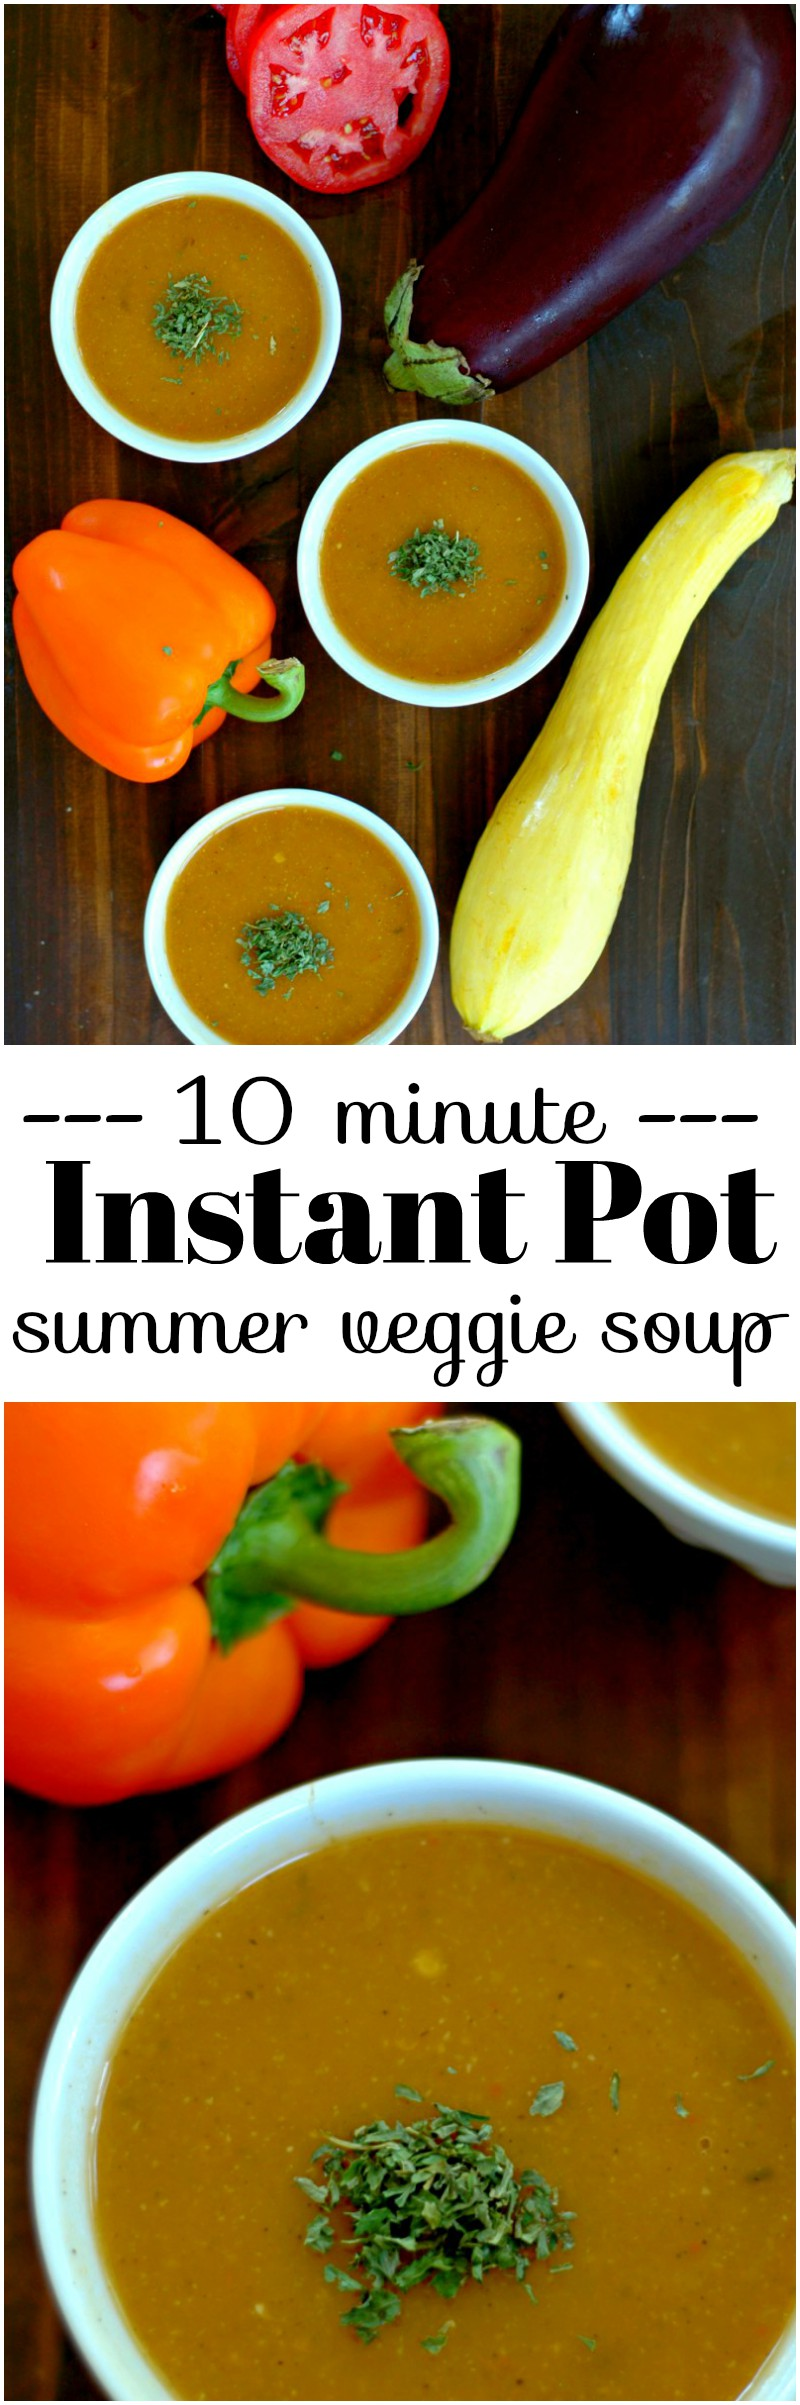 Instant Pot Summer Vegetable Soup :: Vibrant color and full of fresh, in season summer flavor in just 10 minutes for an Instant Pot kid friendly summer soup!